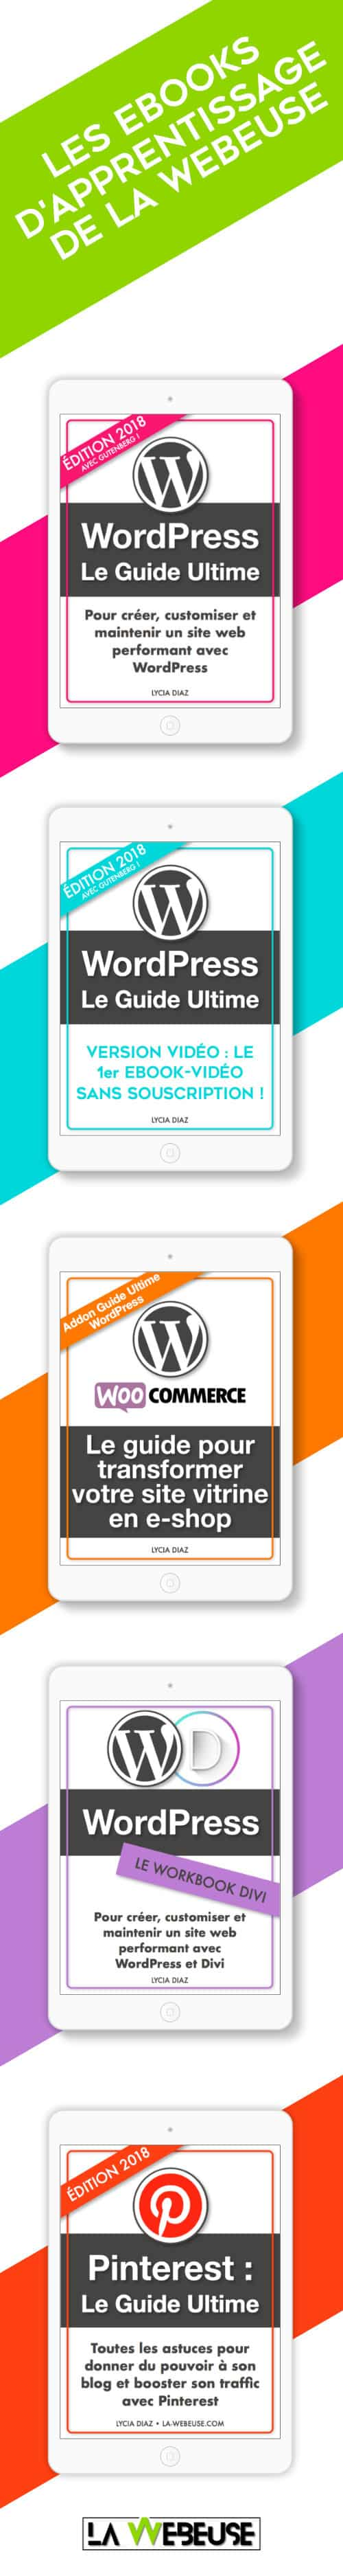 ebooks d'apprentissage de La Webeuse